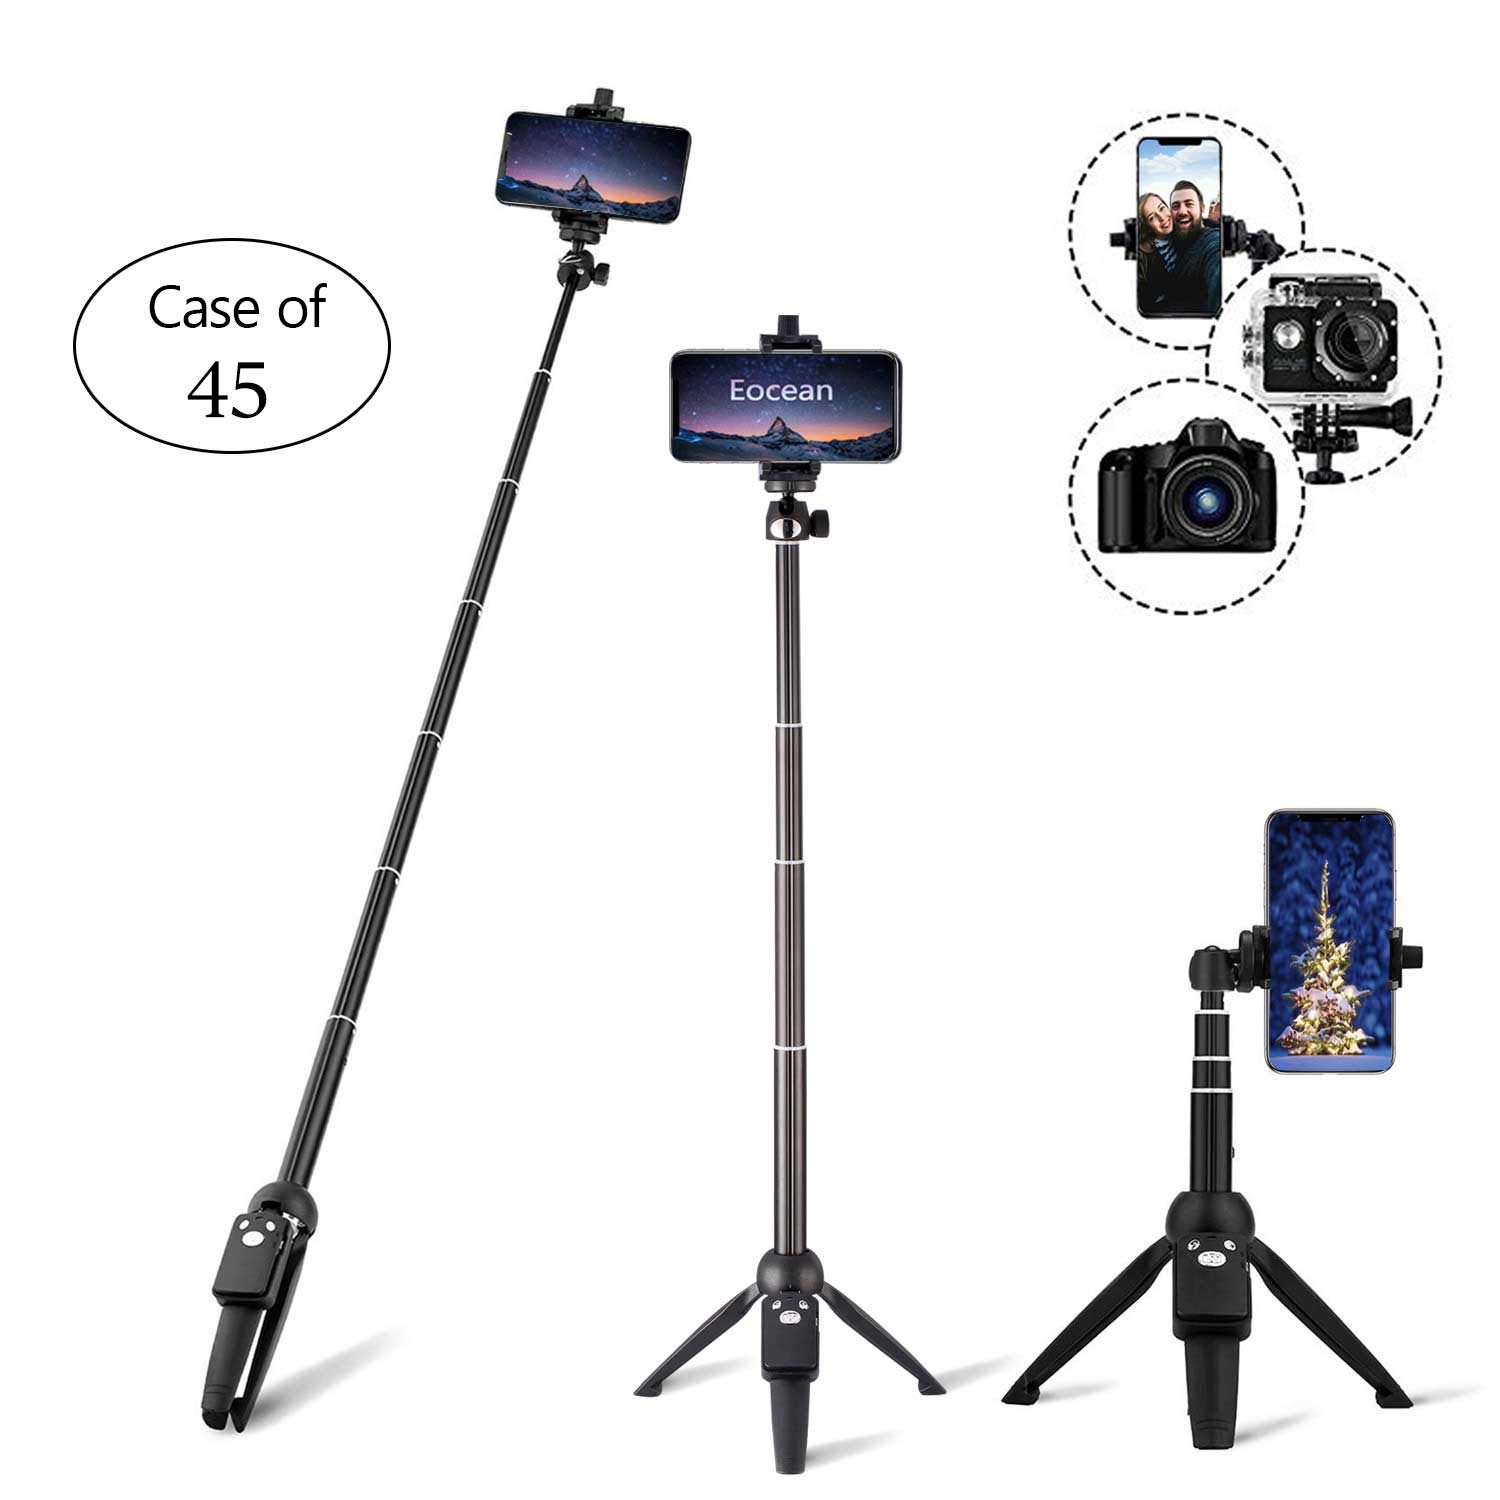 Case of 45, Eocean Selfie Stick, 40 Inch Extendable Selfie Stick with Wireless Remote, Compatible with iPhone/Galaxy Note 9/S9/S9 Plus/Google/Huawei/Xiaomi